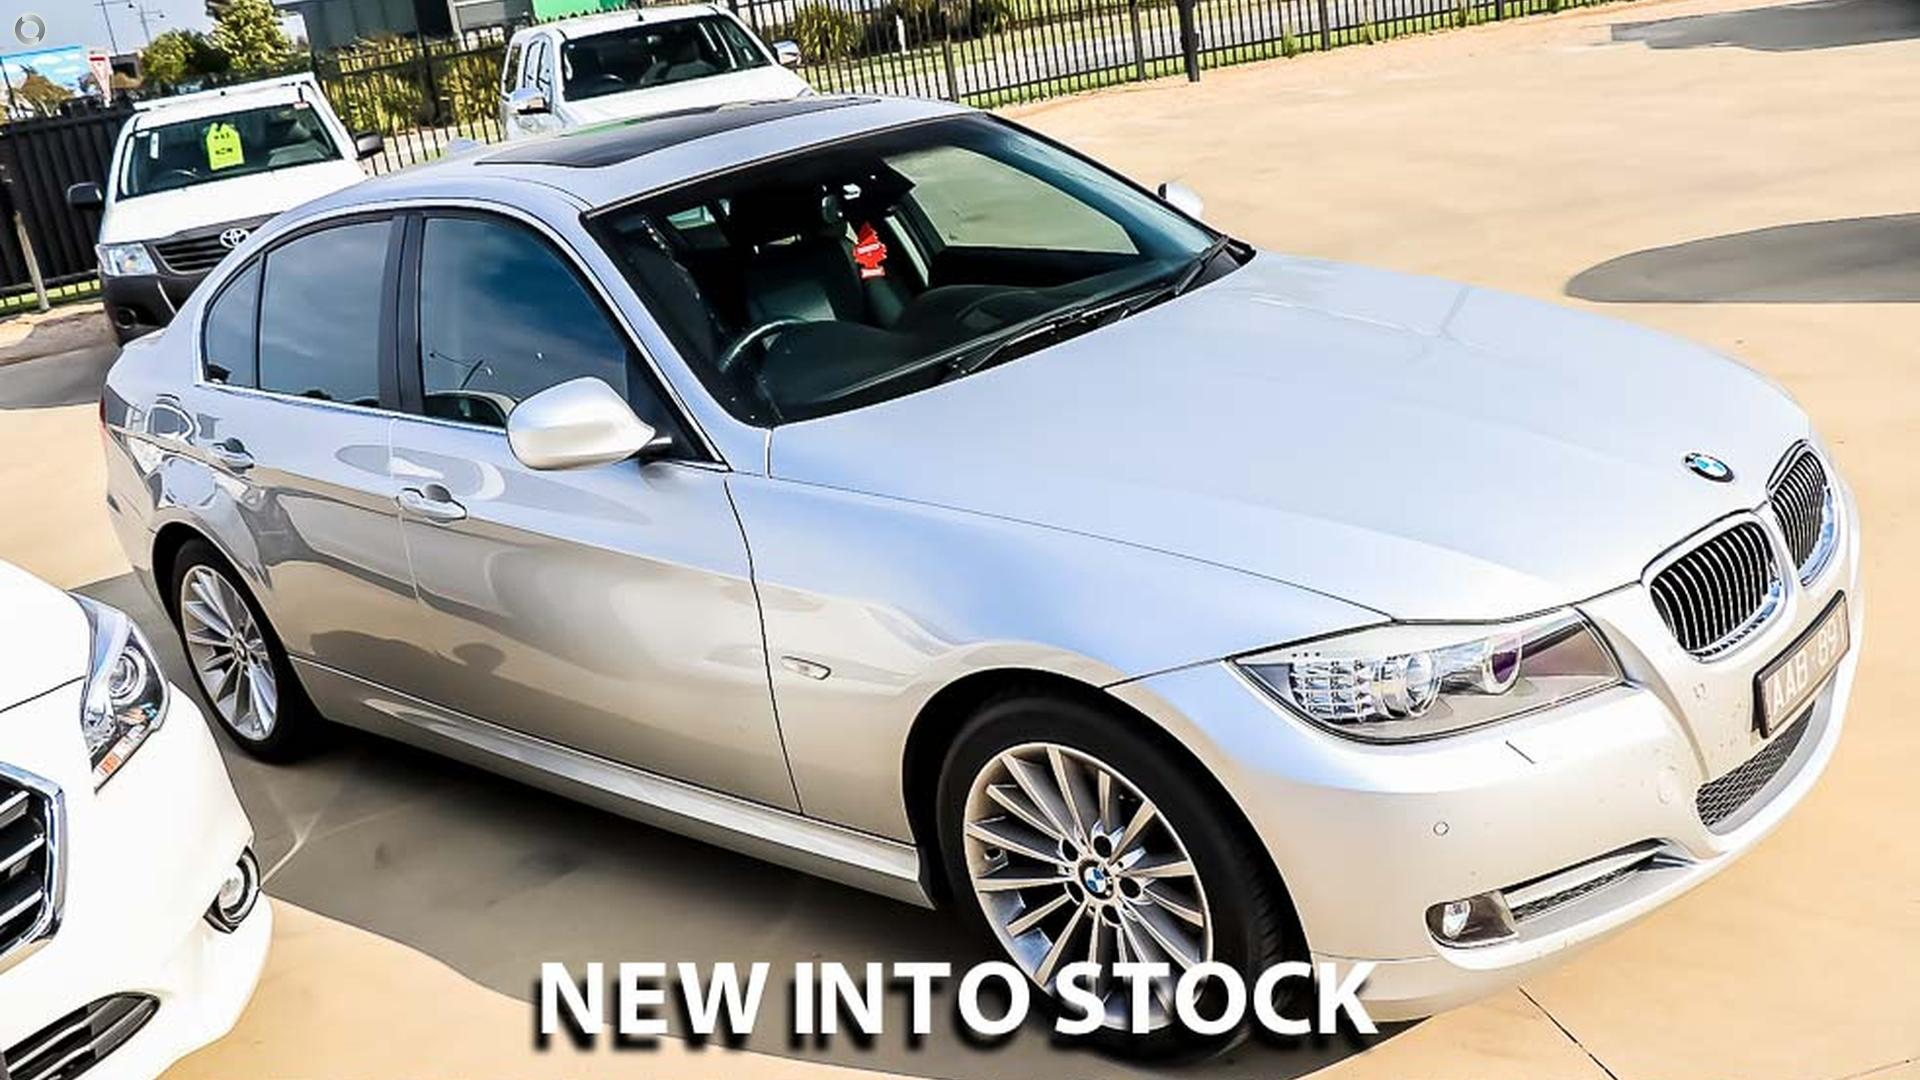 2011 BMW 323i Lifestyle E90